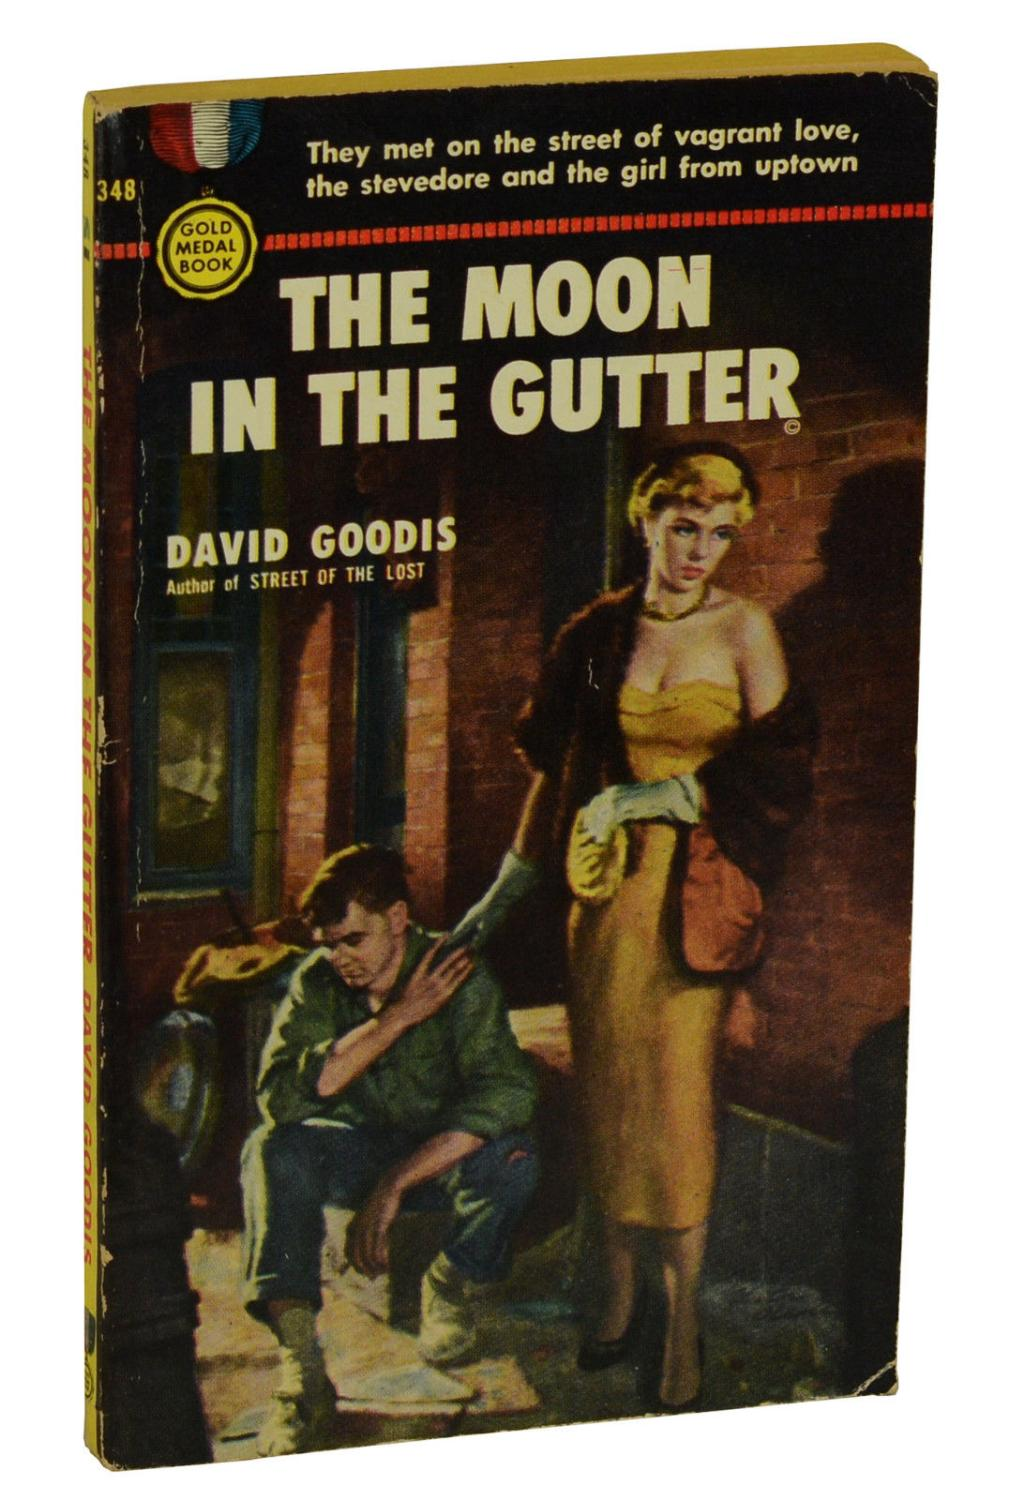 The Moon in the Gutter Goodis, David Softcover